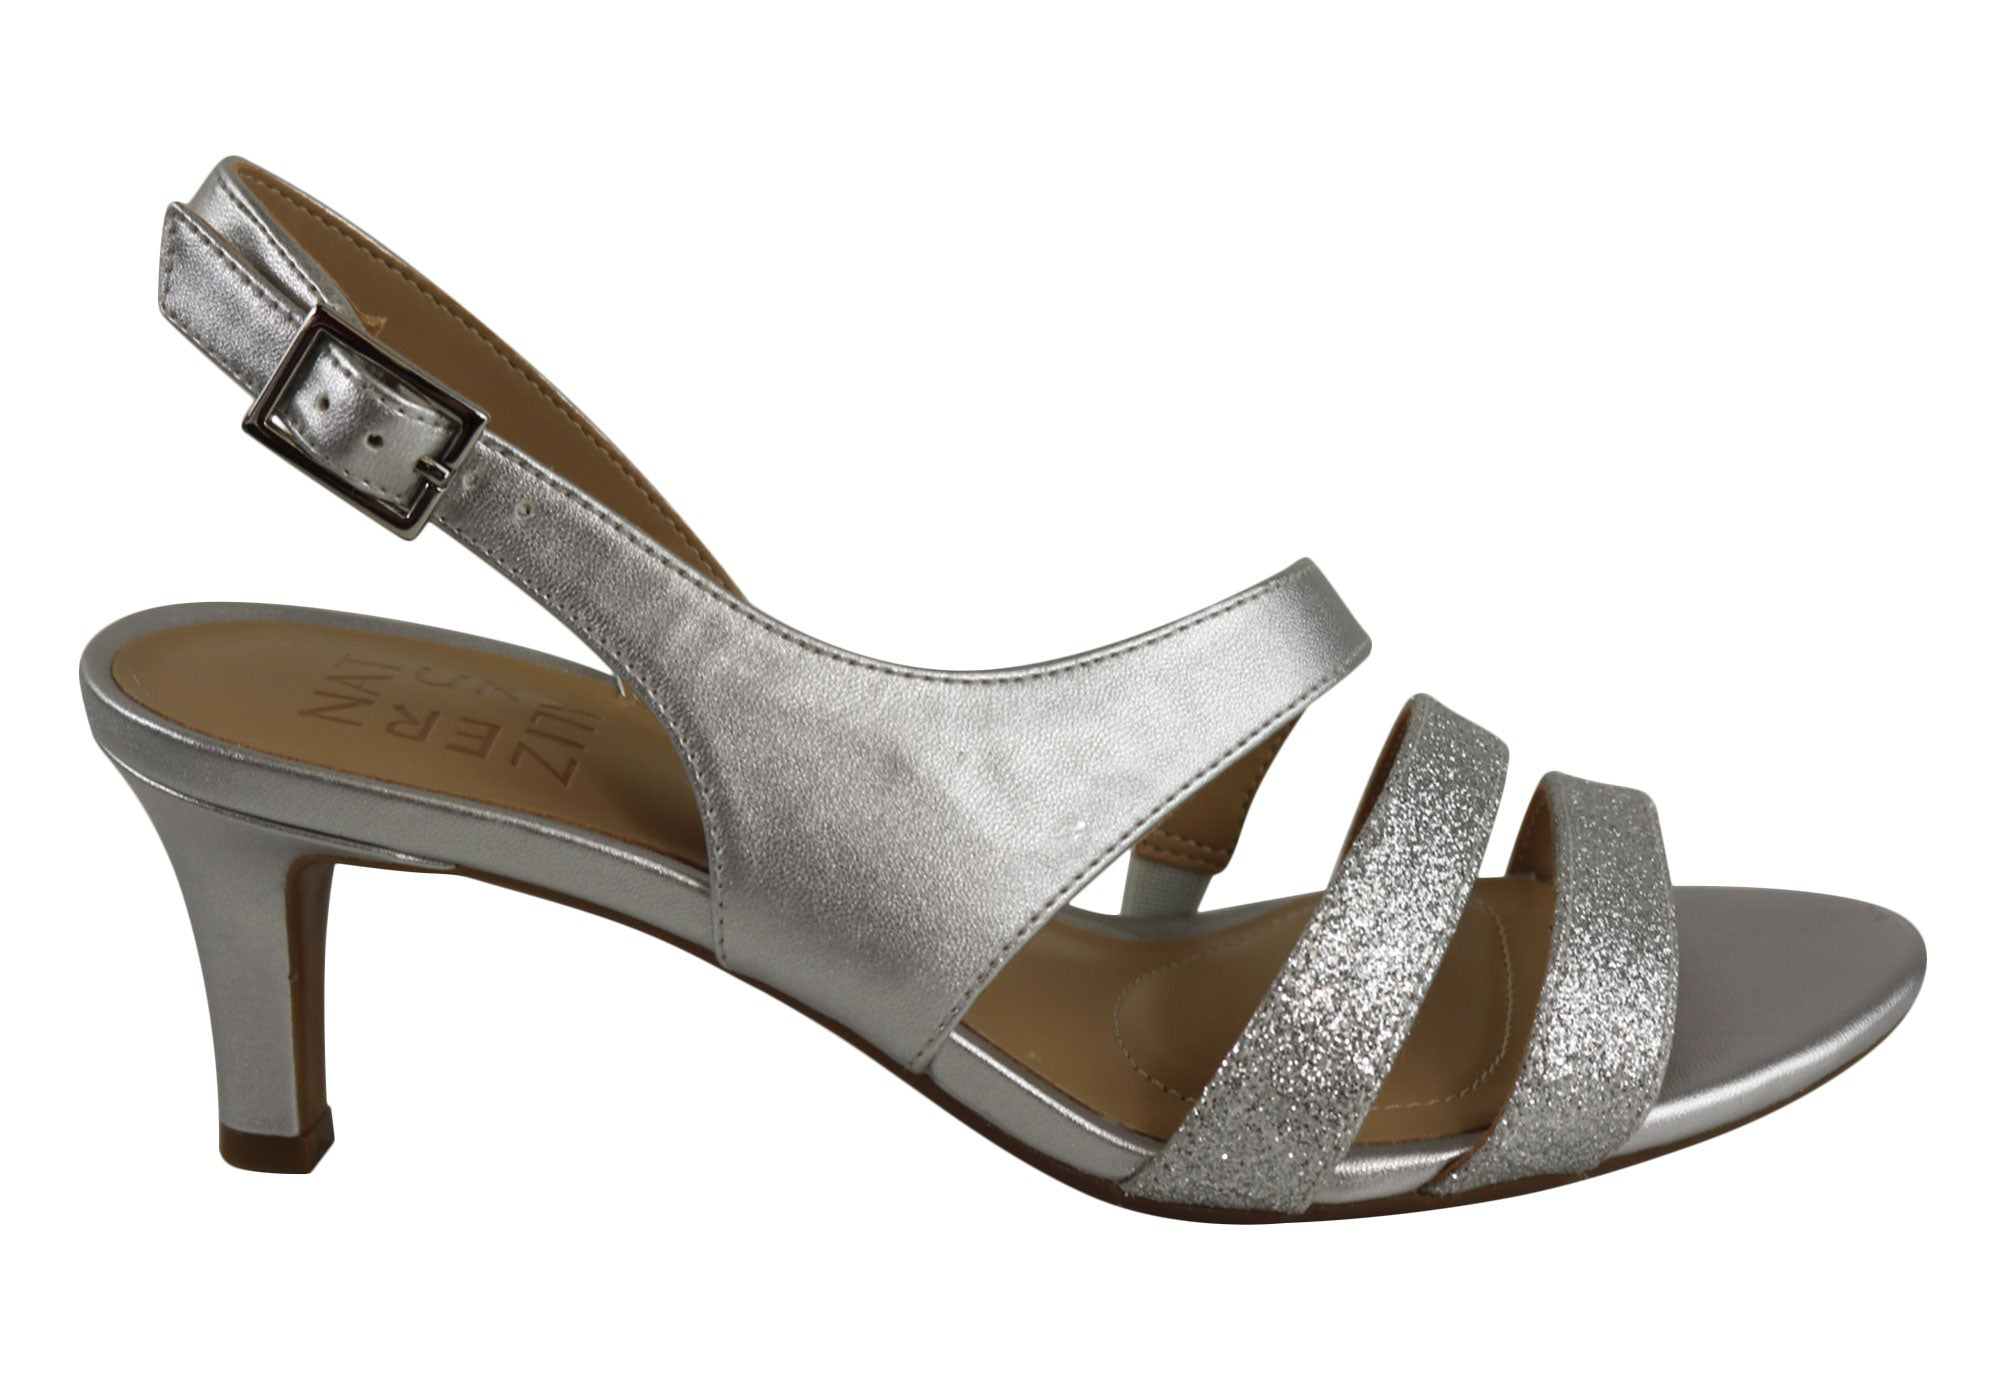 92c89406214 Home Naturalizer Taimi Womens Comfort Wide Fit Mid Heel Dress Sandals.  Black  Silver ...